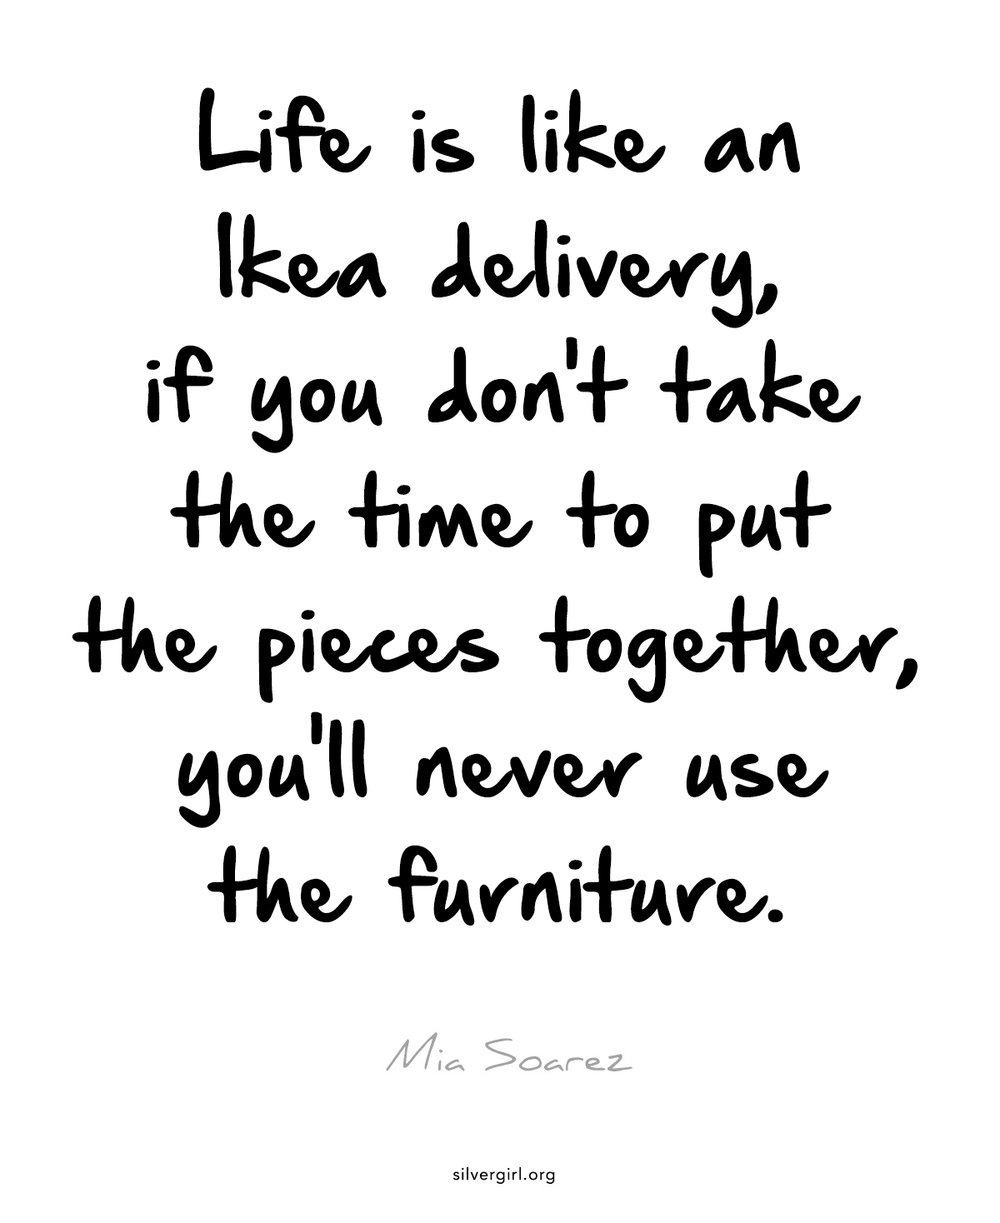 Life is like an Ikea delivery, if you don't take the time to put the pieces together, you'll never use the furniture. - Mia Soarez